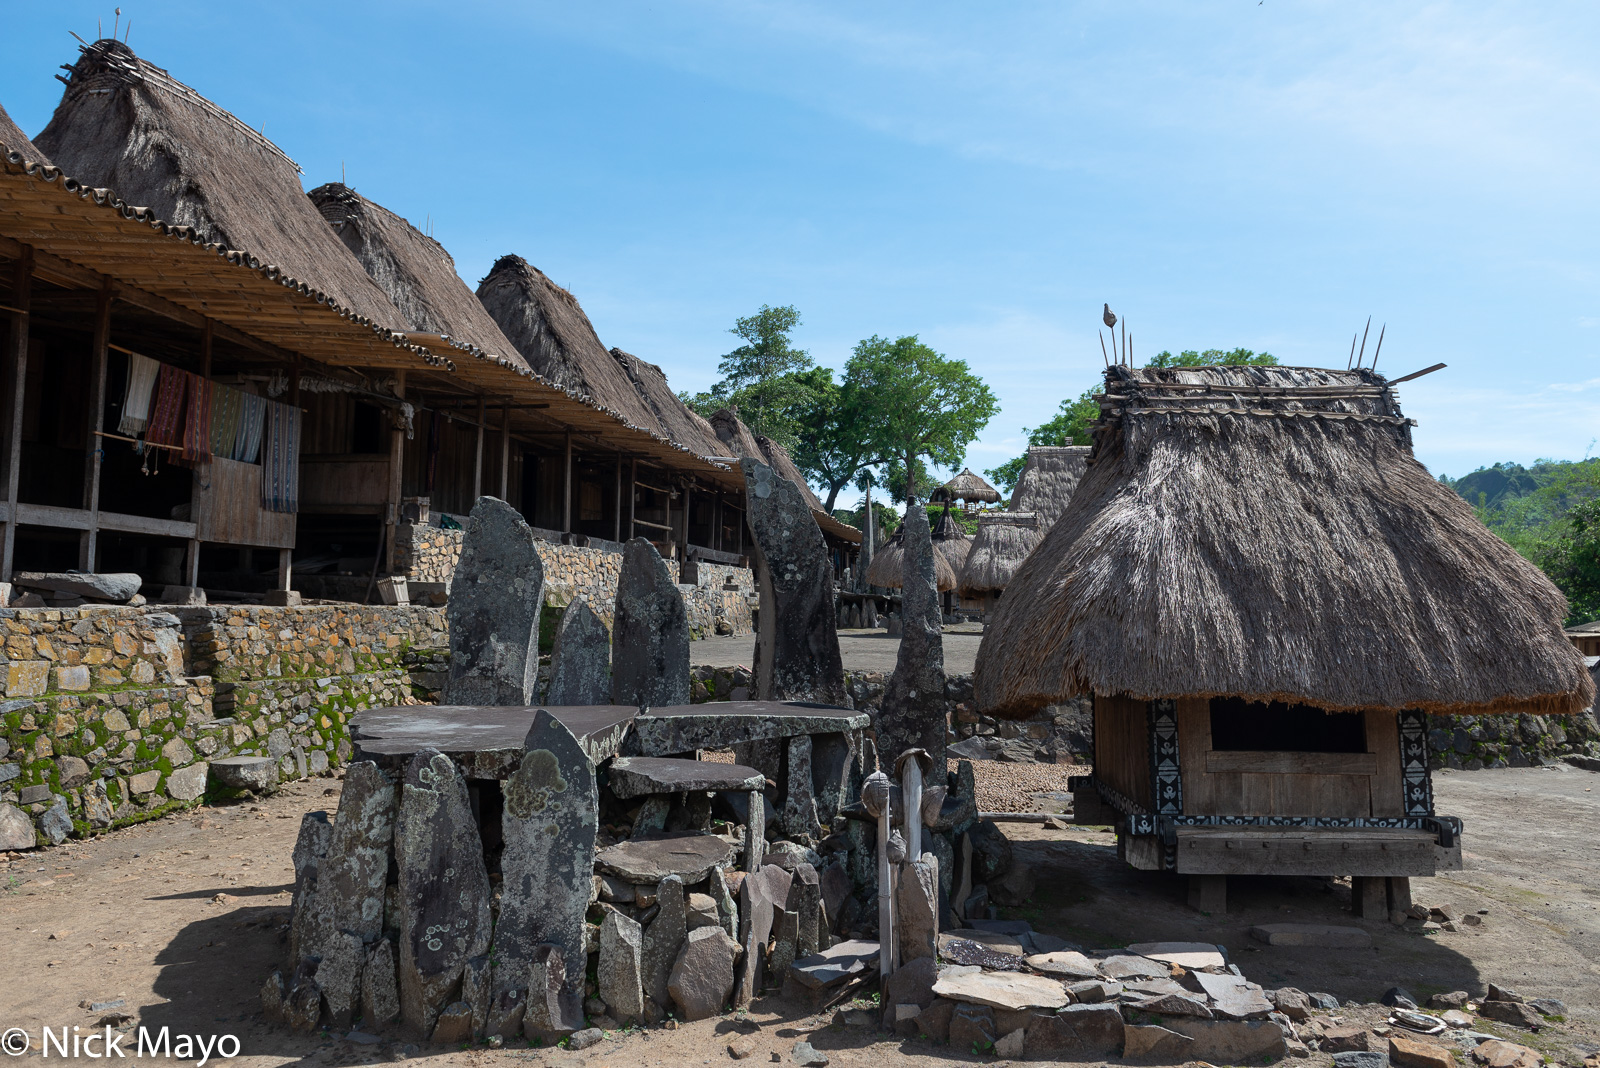 A watu lewa (stone altar) and thatched roofed bhaga in the Ngada Regency village of Bena.